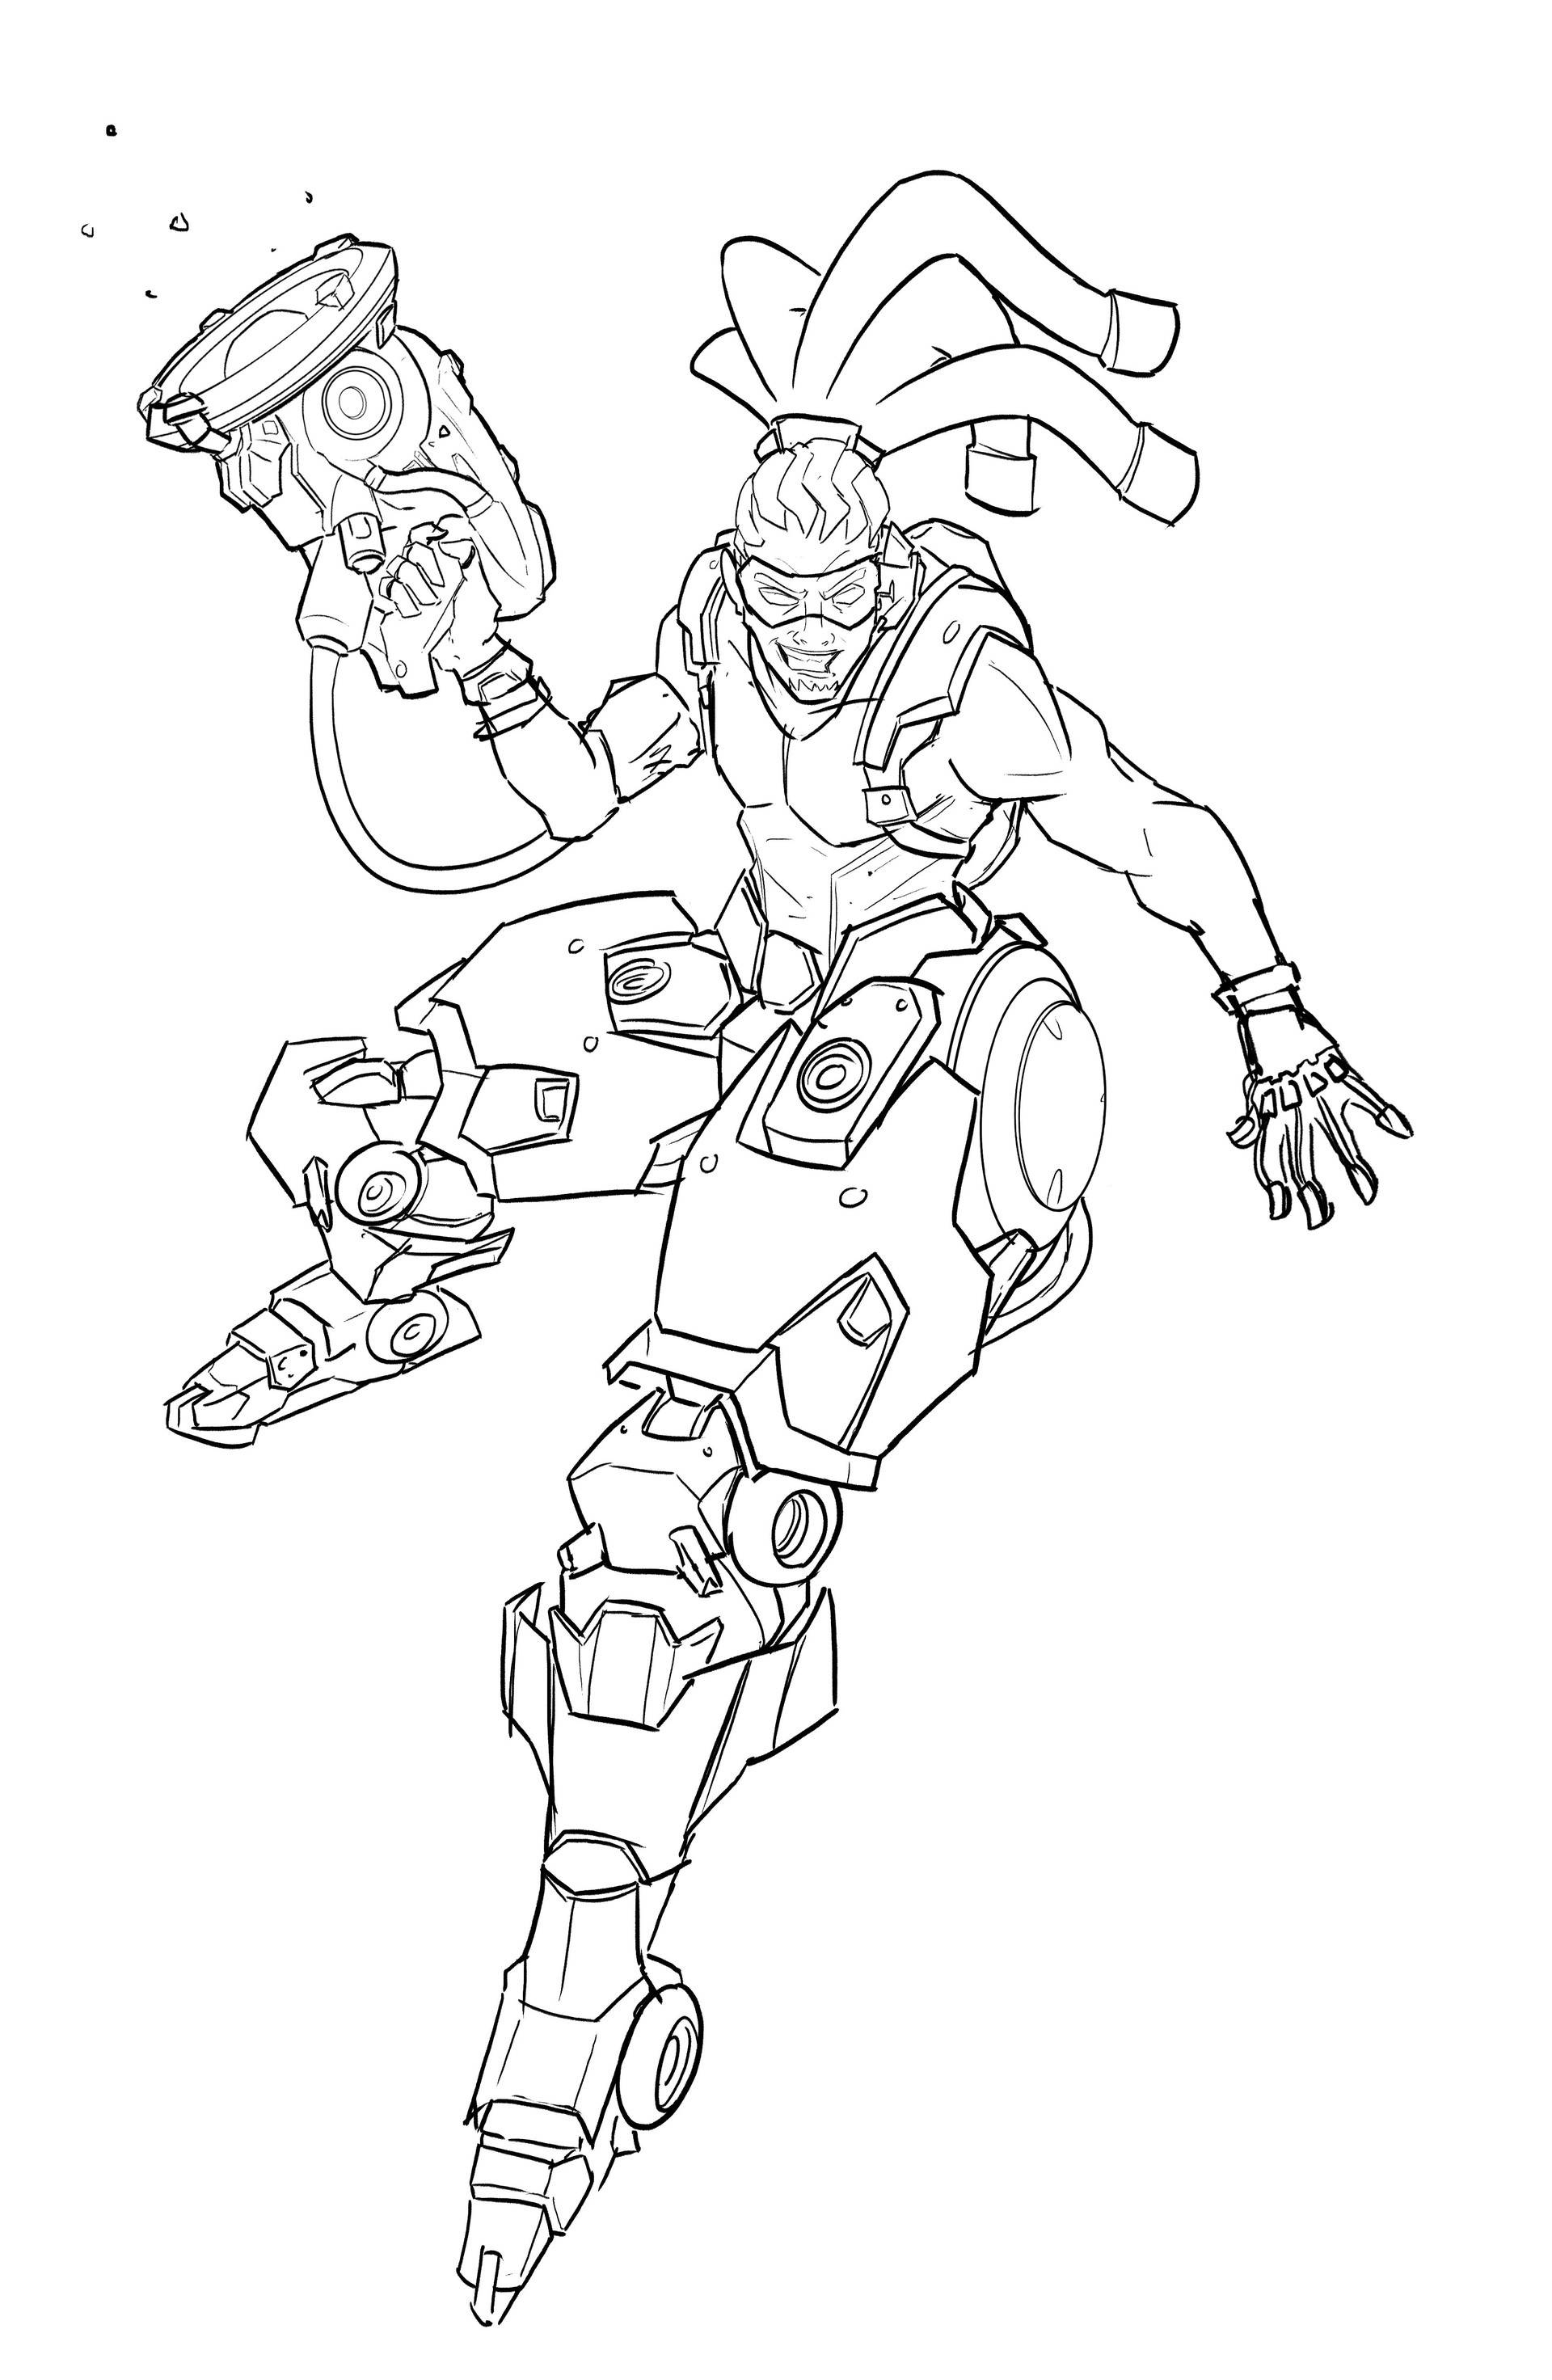 Overwatch genji coloring pages sketch coloring page for Overwatch genji coloring pages